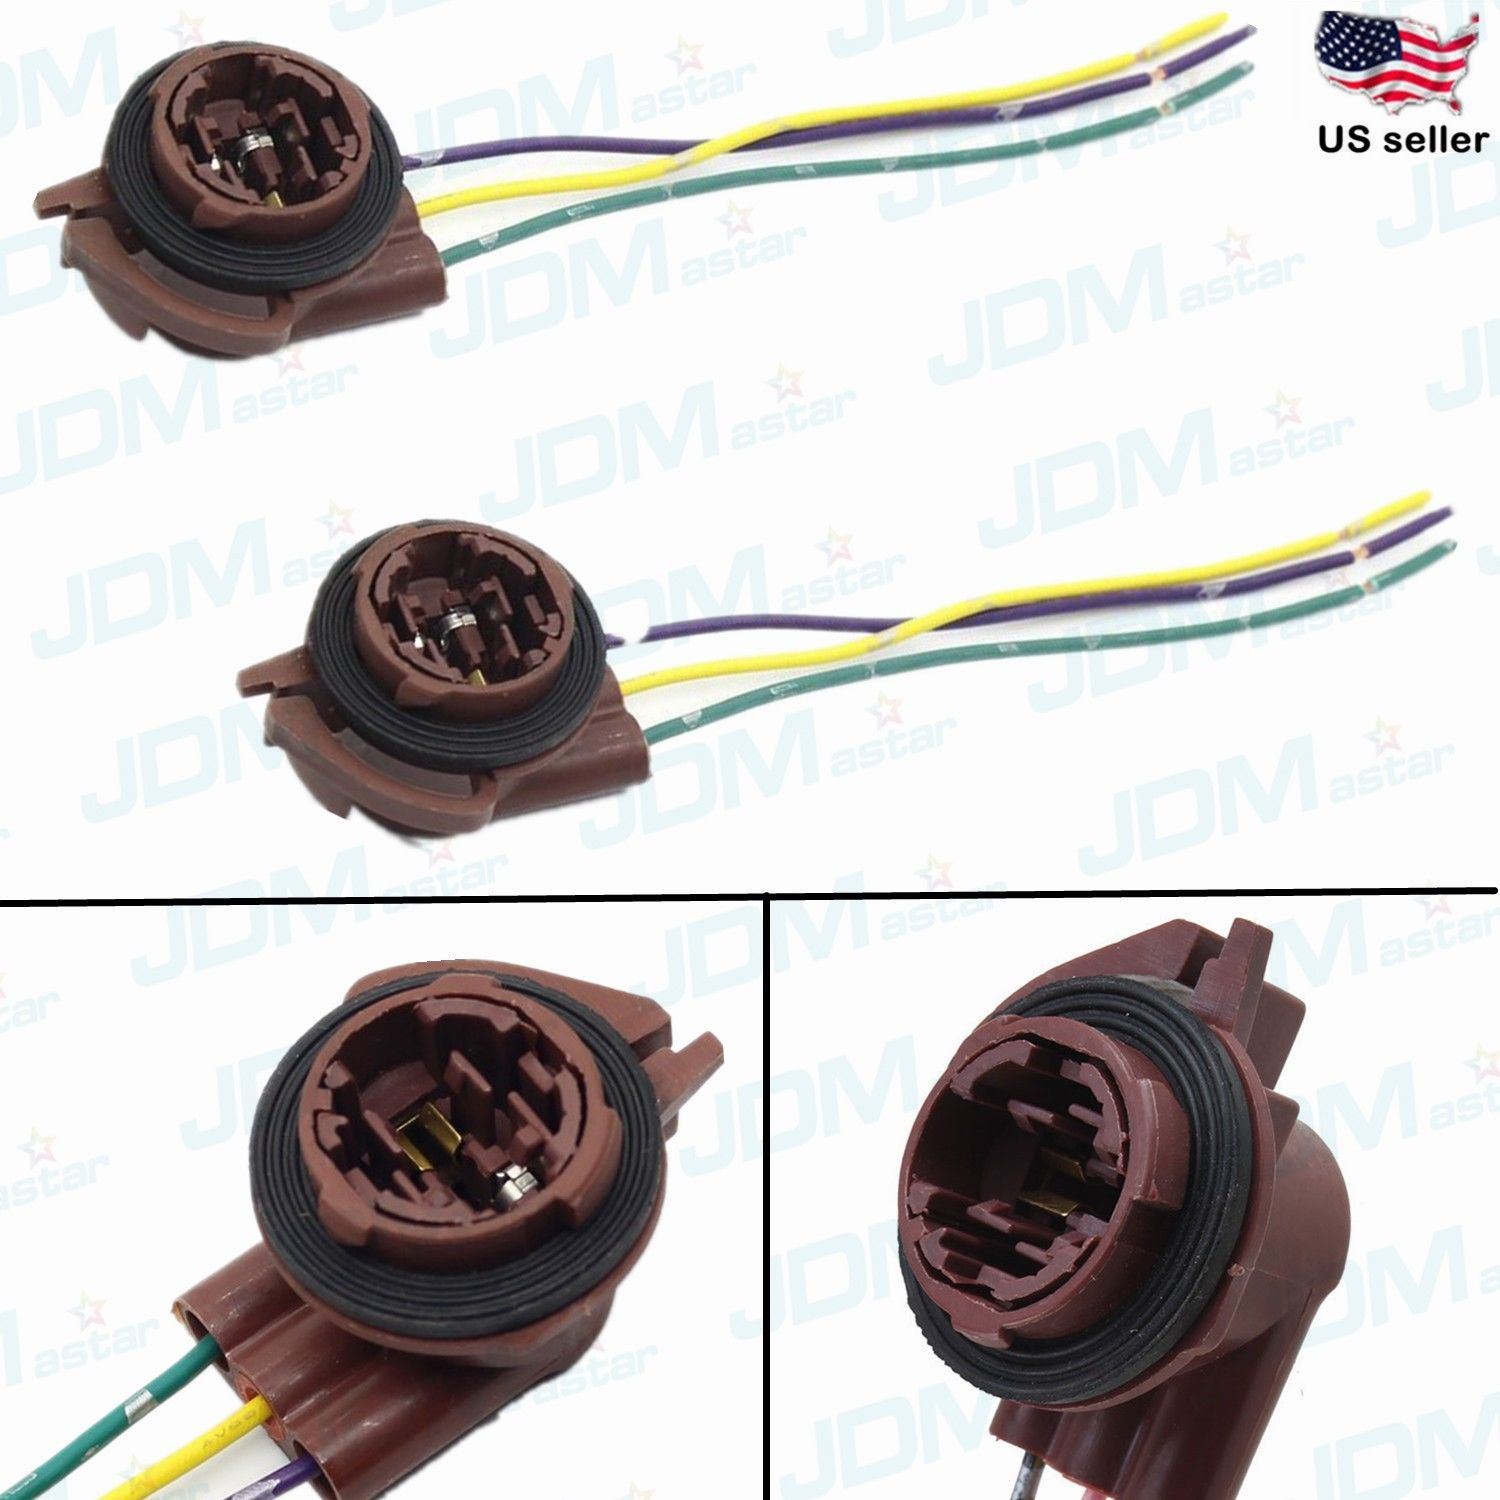 3157A socket harness 1?versionId=luZVsWTmtBB0K6WrOp6TCHwbqxcaKjlO jdm astar 3157 4157na bulb socket turn signal light harness wire 1986 Toyota 4Runner Wiring Harness at virtualis.co